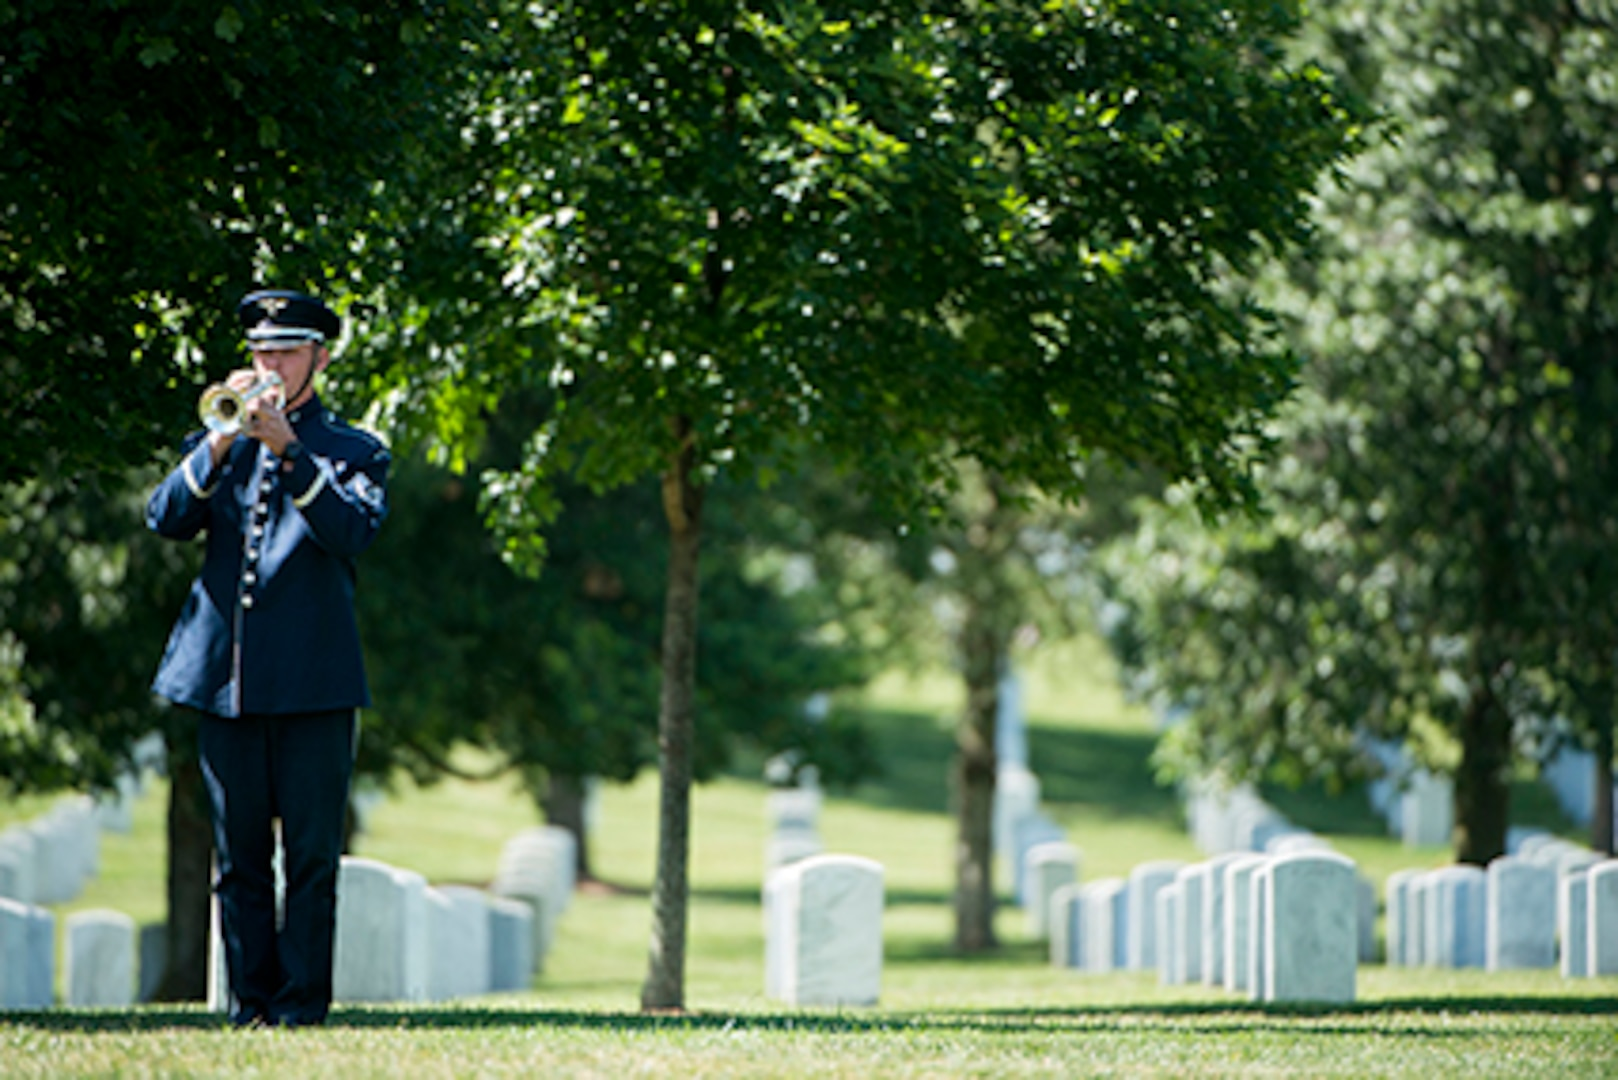 """A bugler with the U.S. Air Force plays Taps during the graveside service for 2nd. Lt. Malvin Greston """"Marvelous Mal"""" Whitfield in Section 8 of Arlington National Cemetery, June 8, 2016, in Arlington, Va. Whitfield was a five-time Olympic medalist and a Tuskegee Airman."""